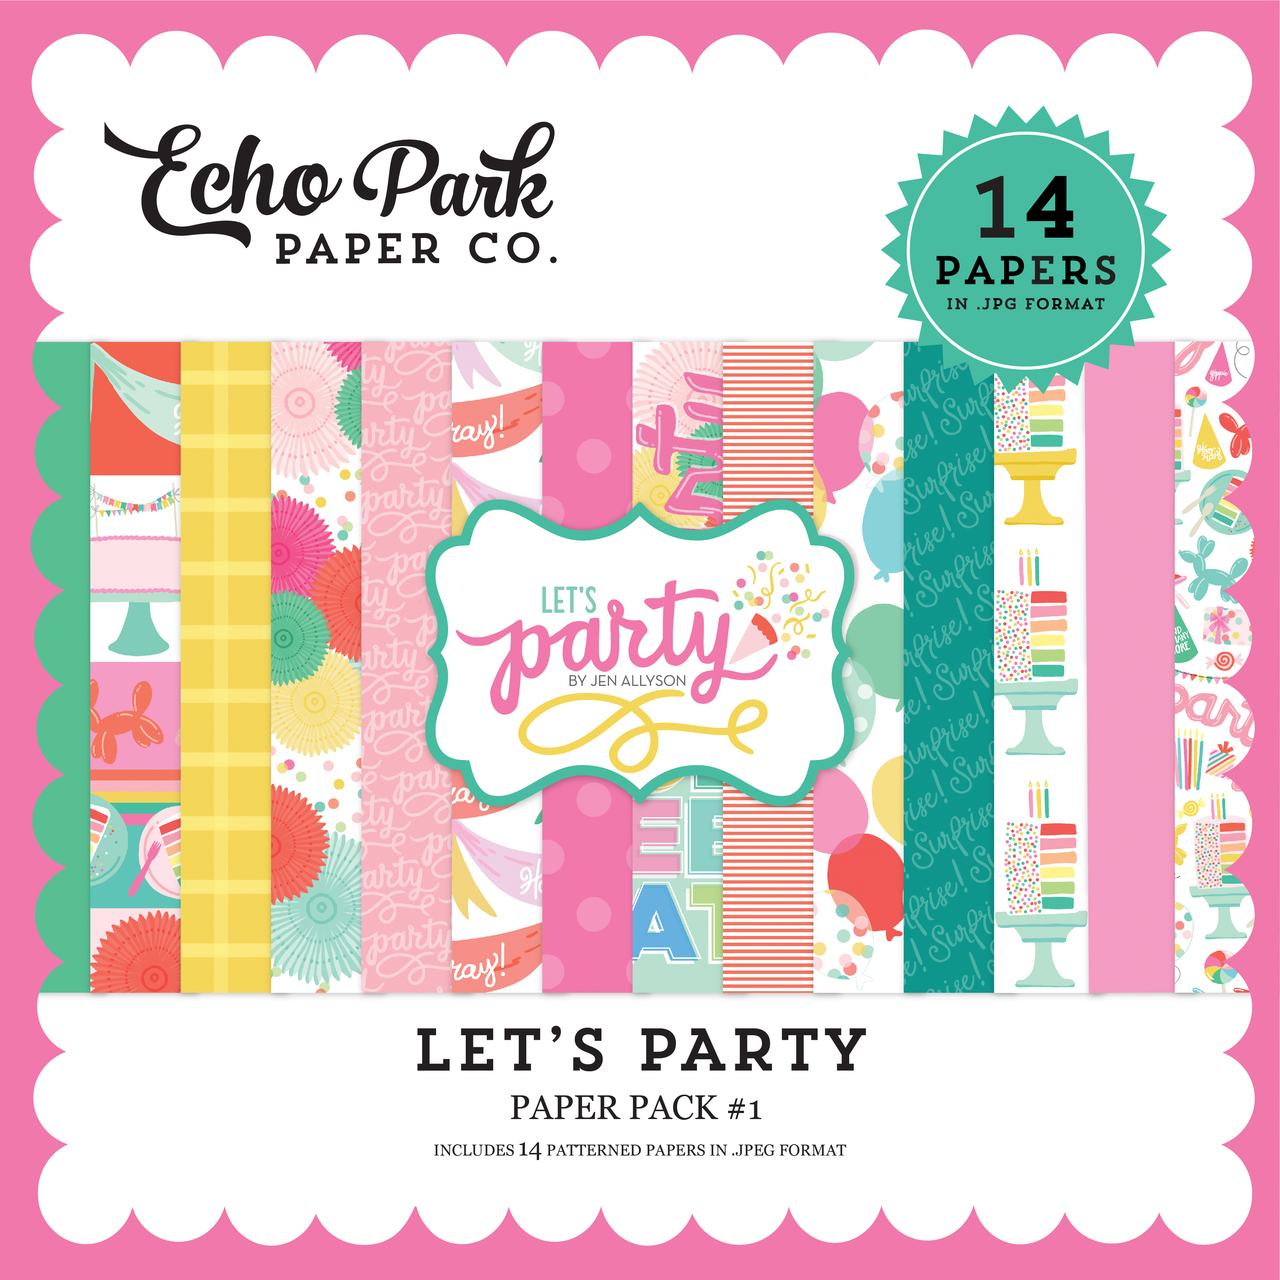 Let's Party Paper Pack #1